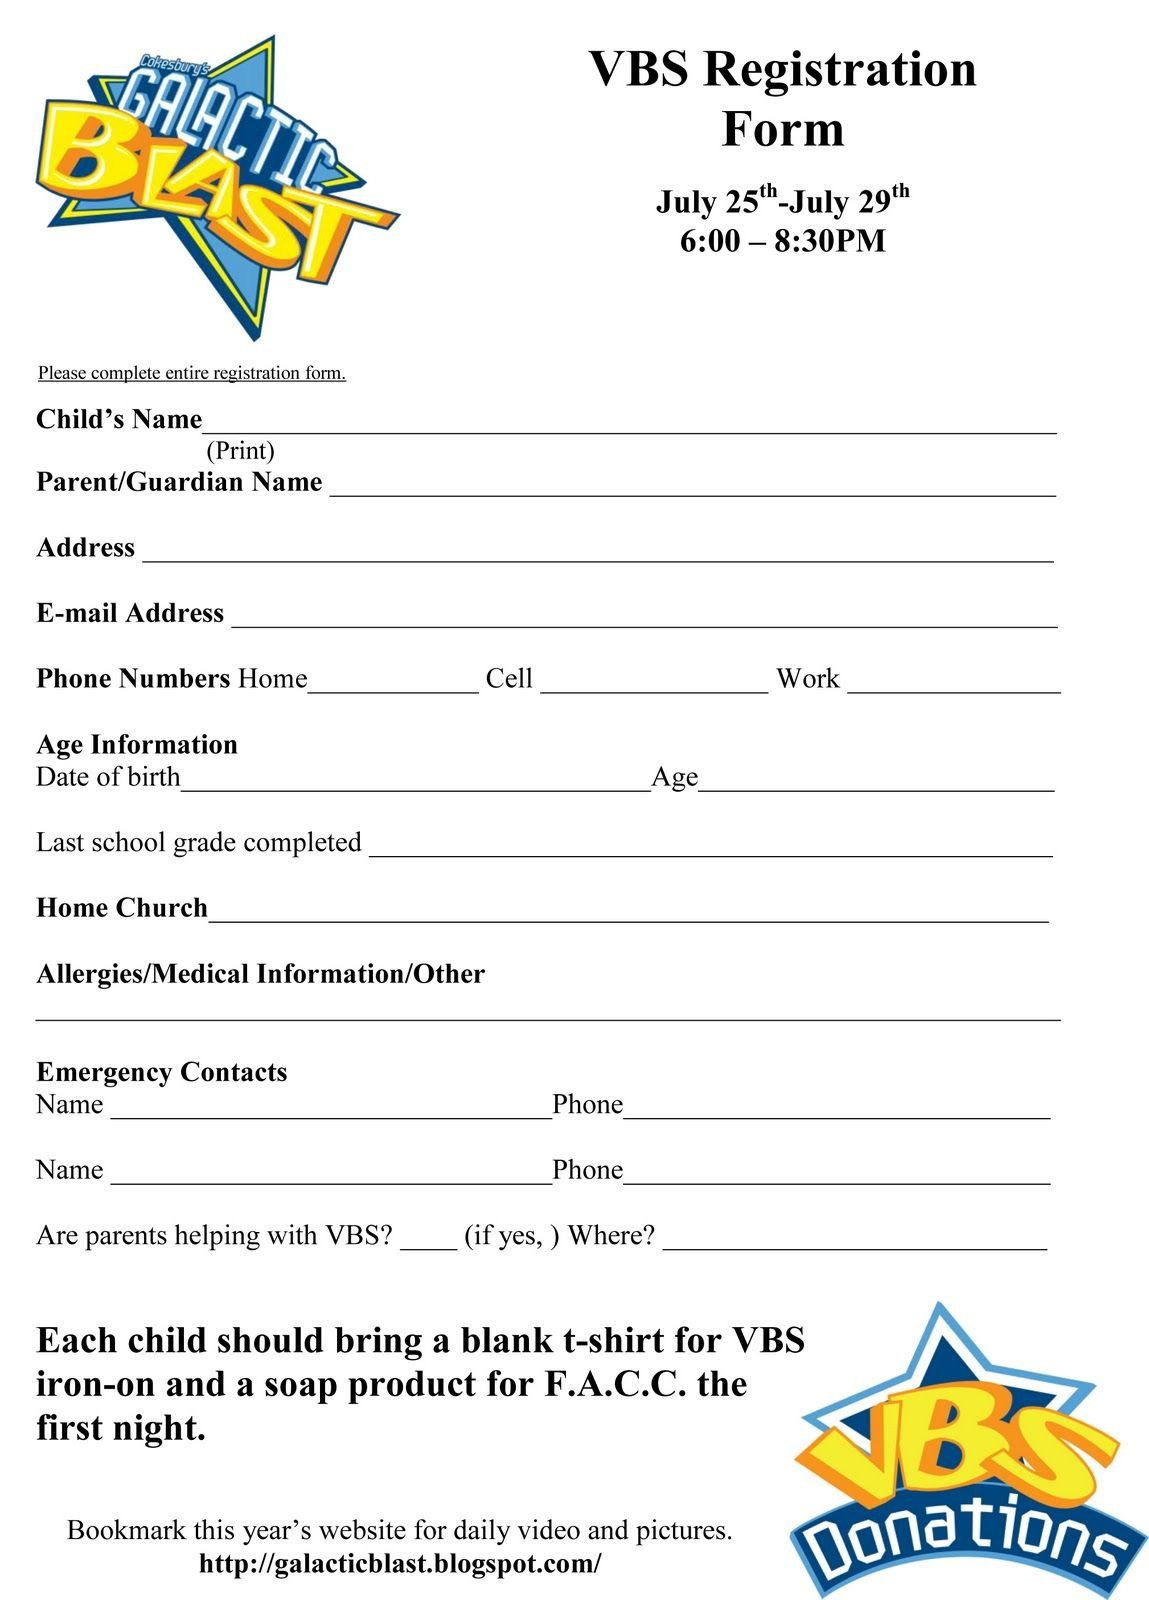 Registration form Template Free Free Vbs Registration form Template Vbs